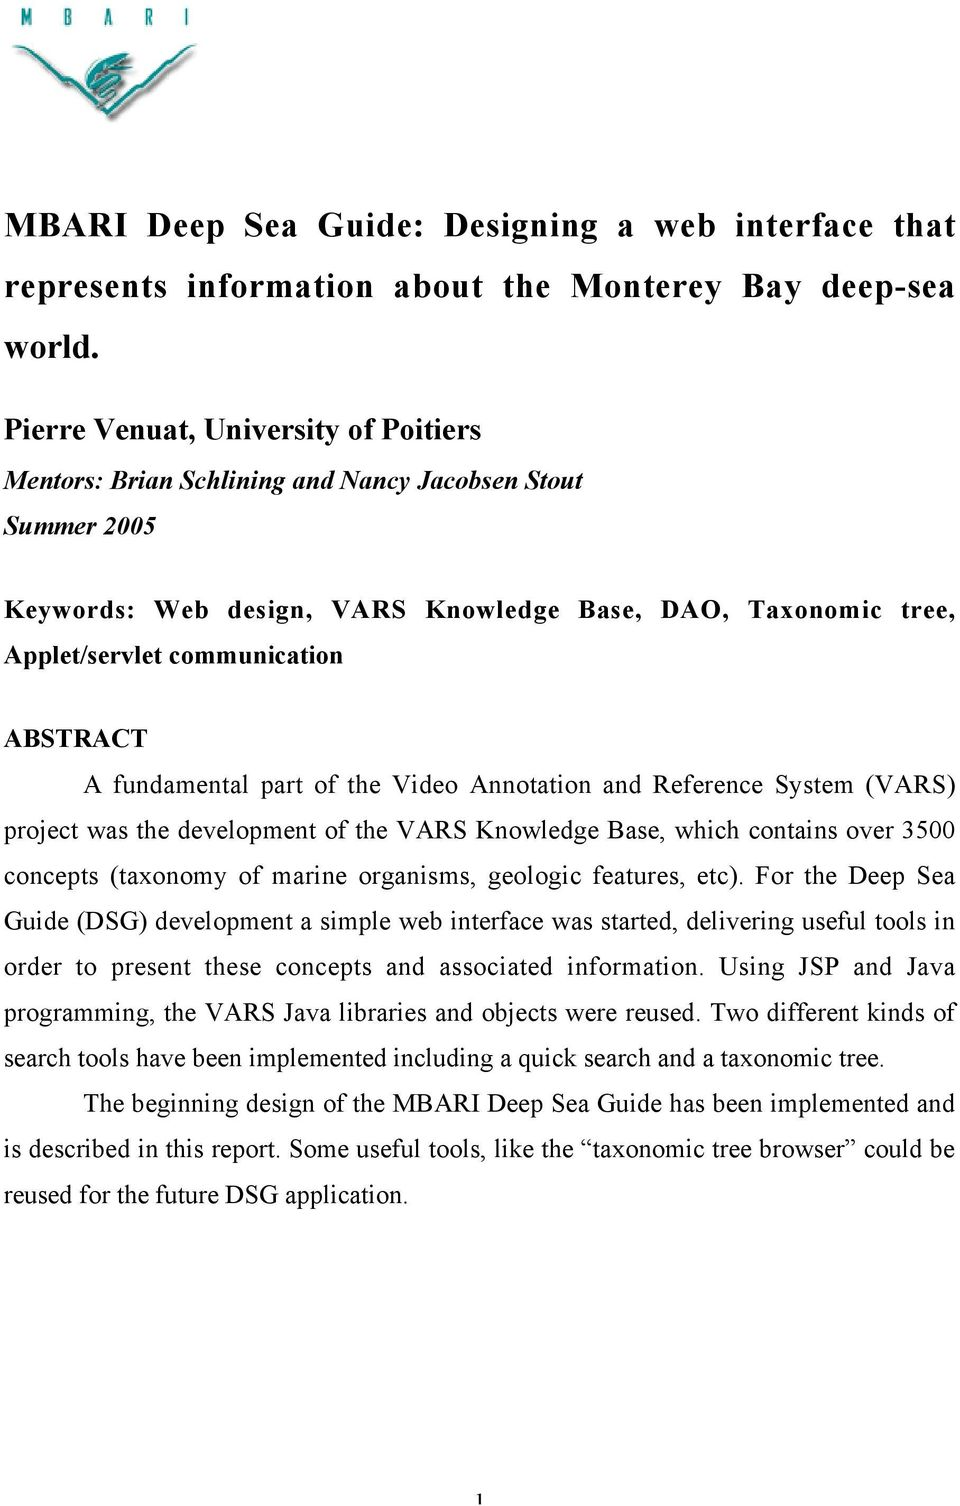 ABSTRACT A fundamental part of the Video Annotation and Reference System (VARS) project was the development of the VARS Knowledge Base, which contains over 3500 concepts (taxonomy of marine